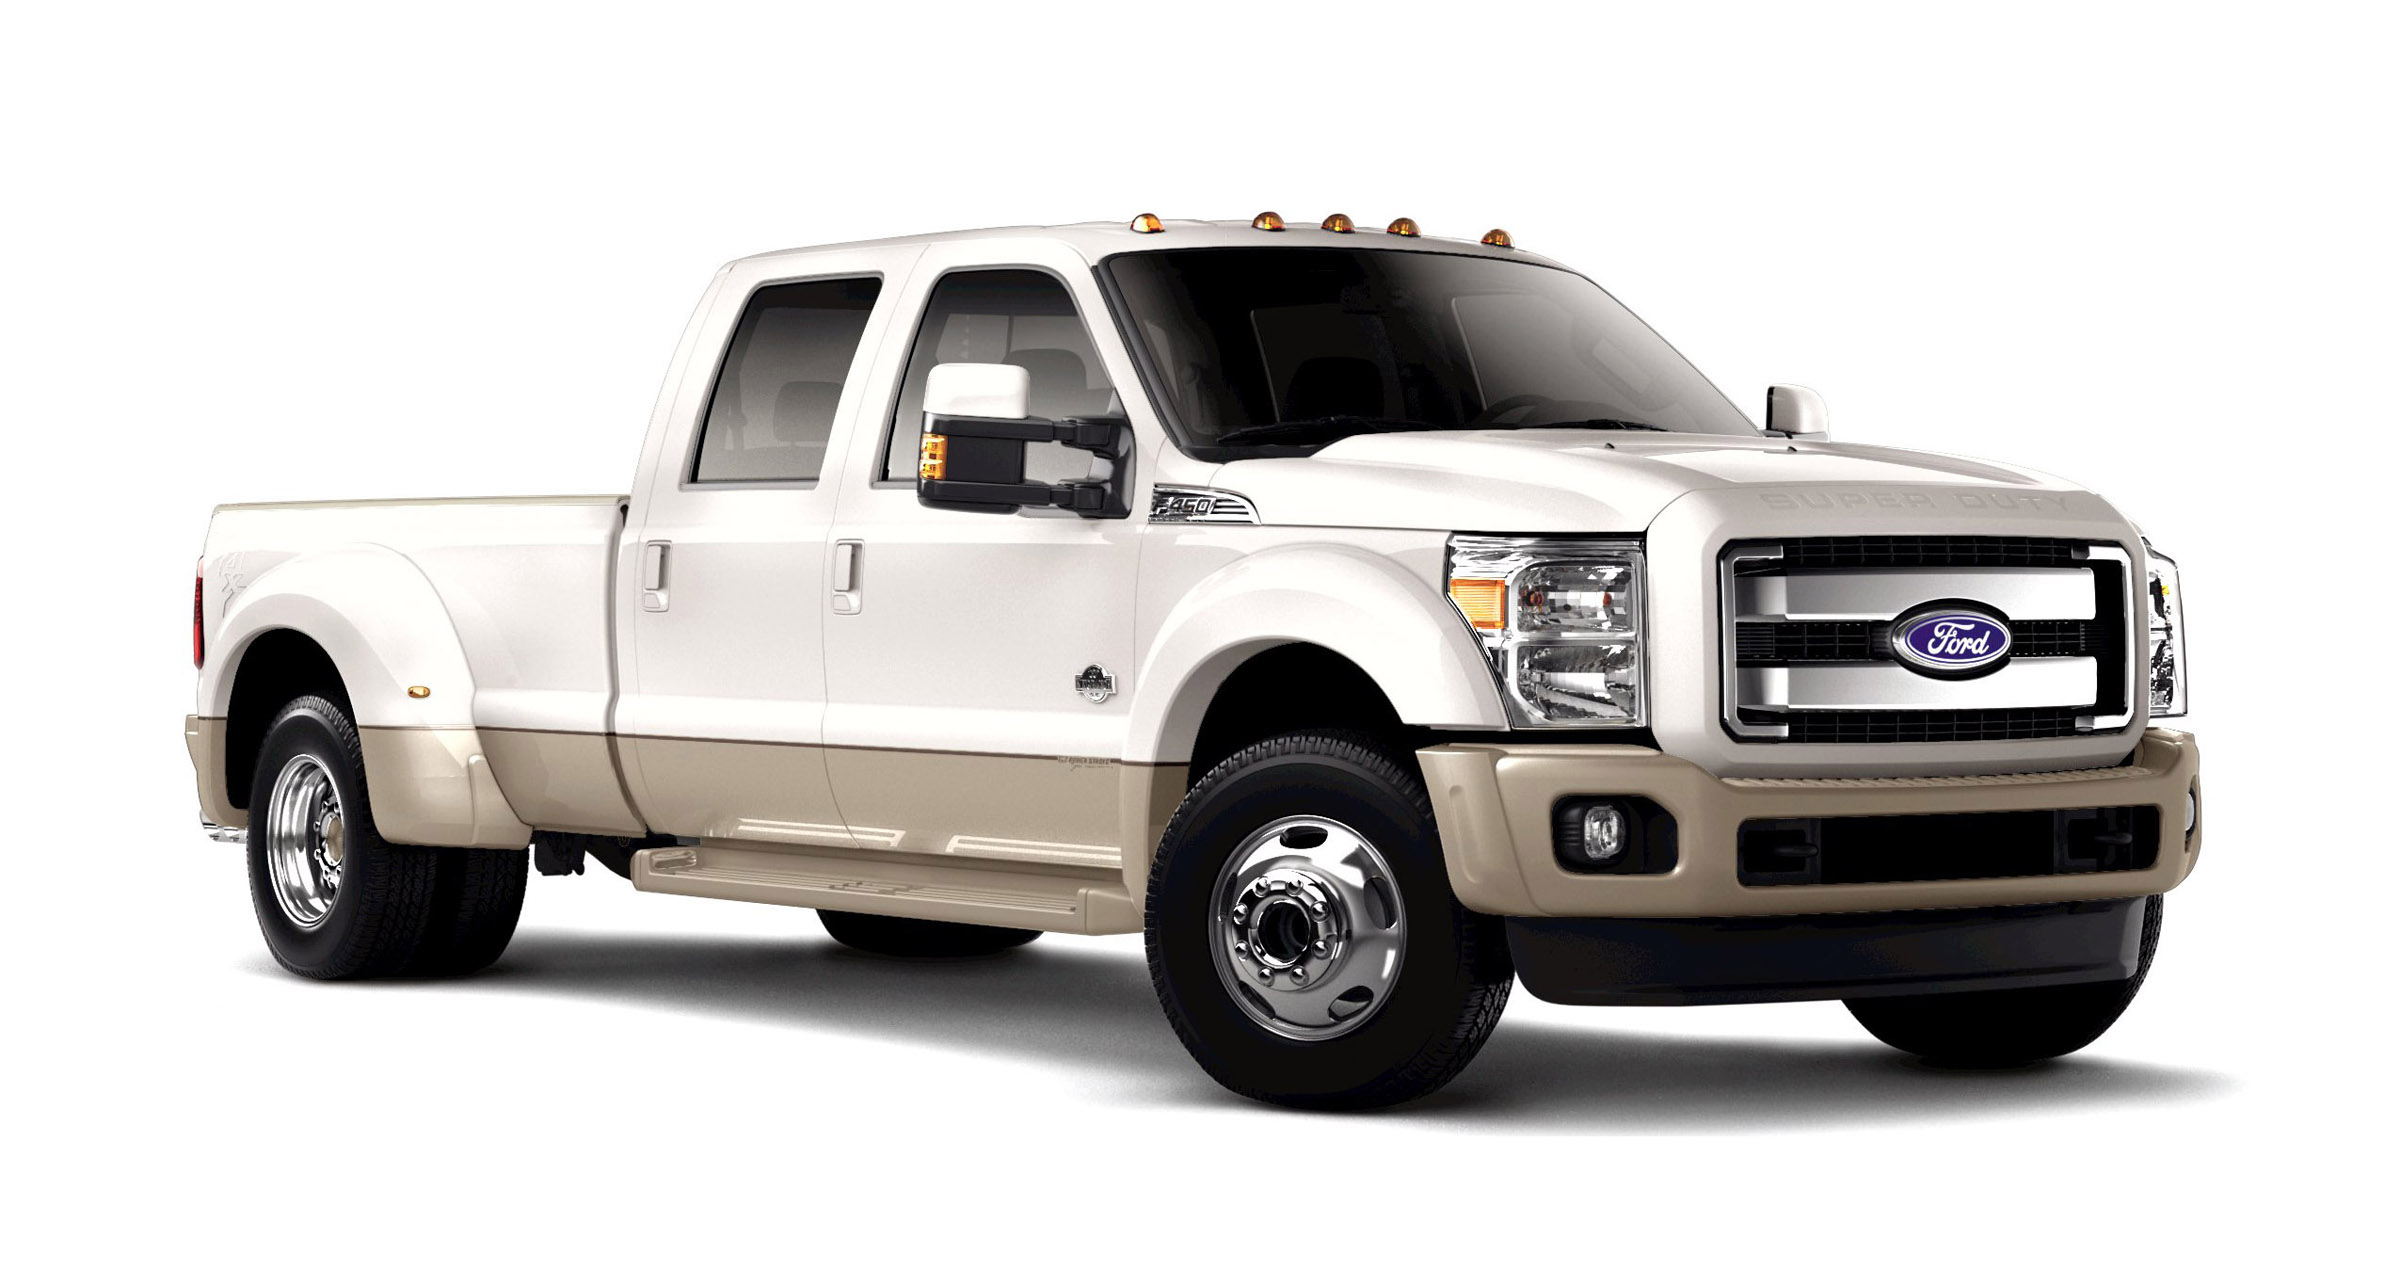 Ford Super Duty >> 2012 FORD F-450 SUPER DUTY - Image #8